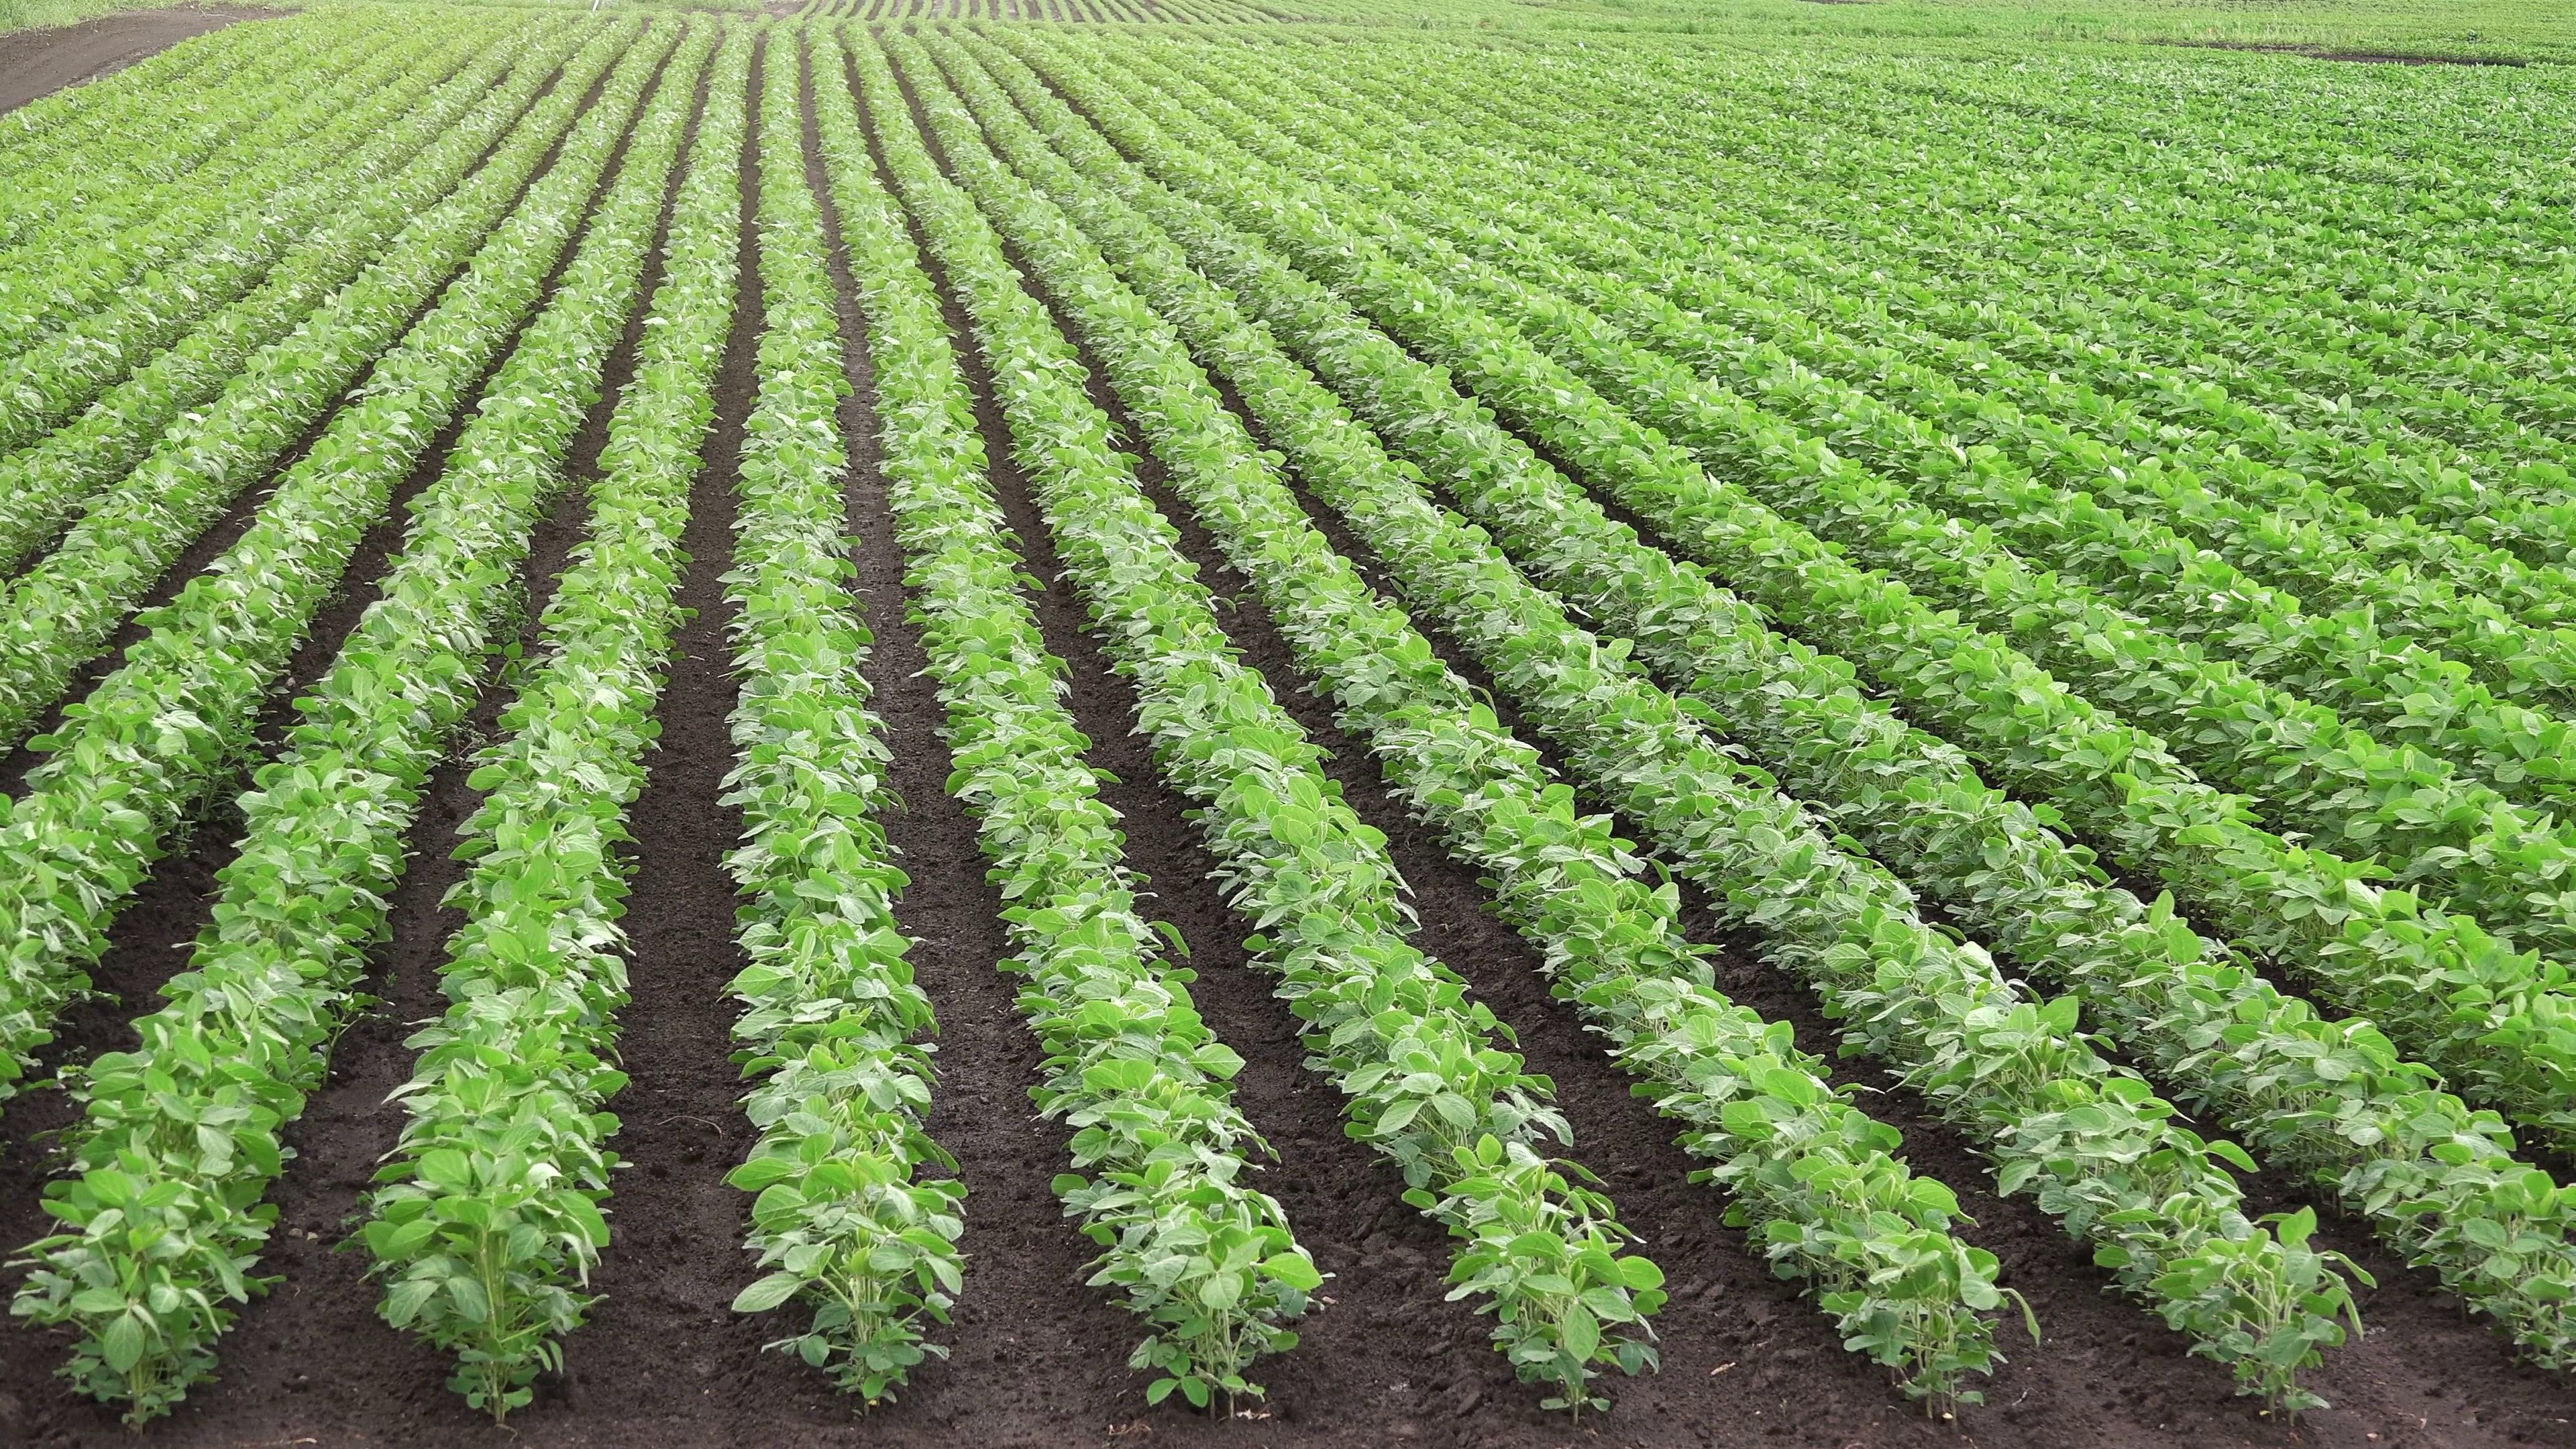 Cultivated soybean field, crops growing in rows Stock Video Footage ...